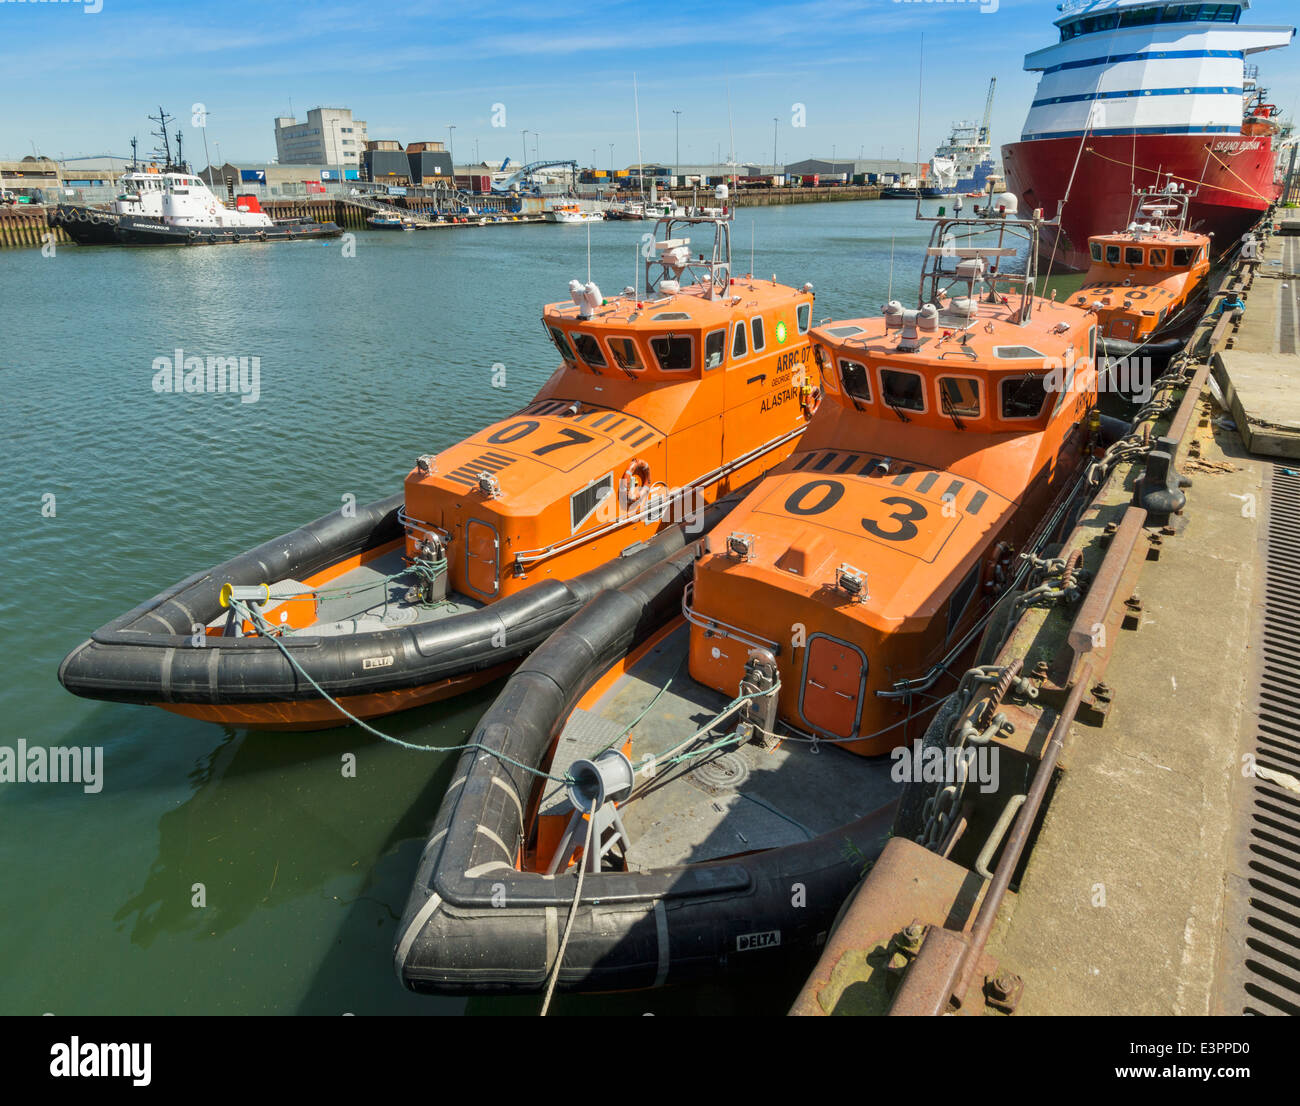 ABERDEEN HARBOUR SCOTLAND WITH DELTA SEARCH AND RESCUE BOATS MOORED AT THE QUAY - Stock Image